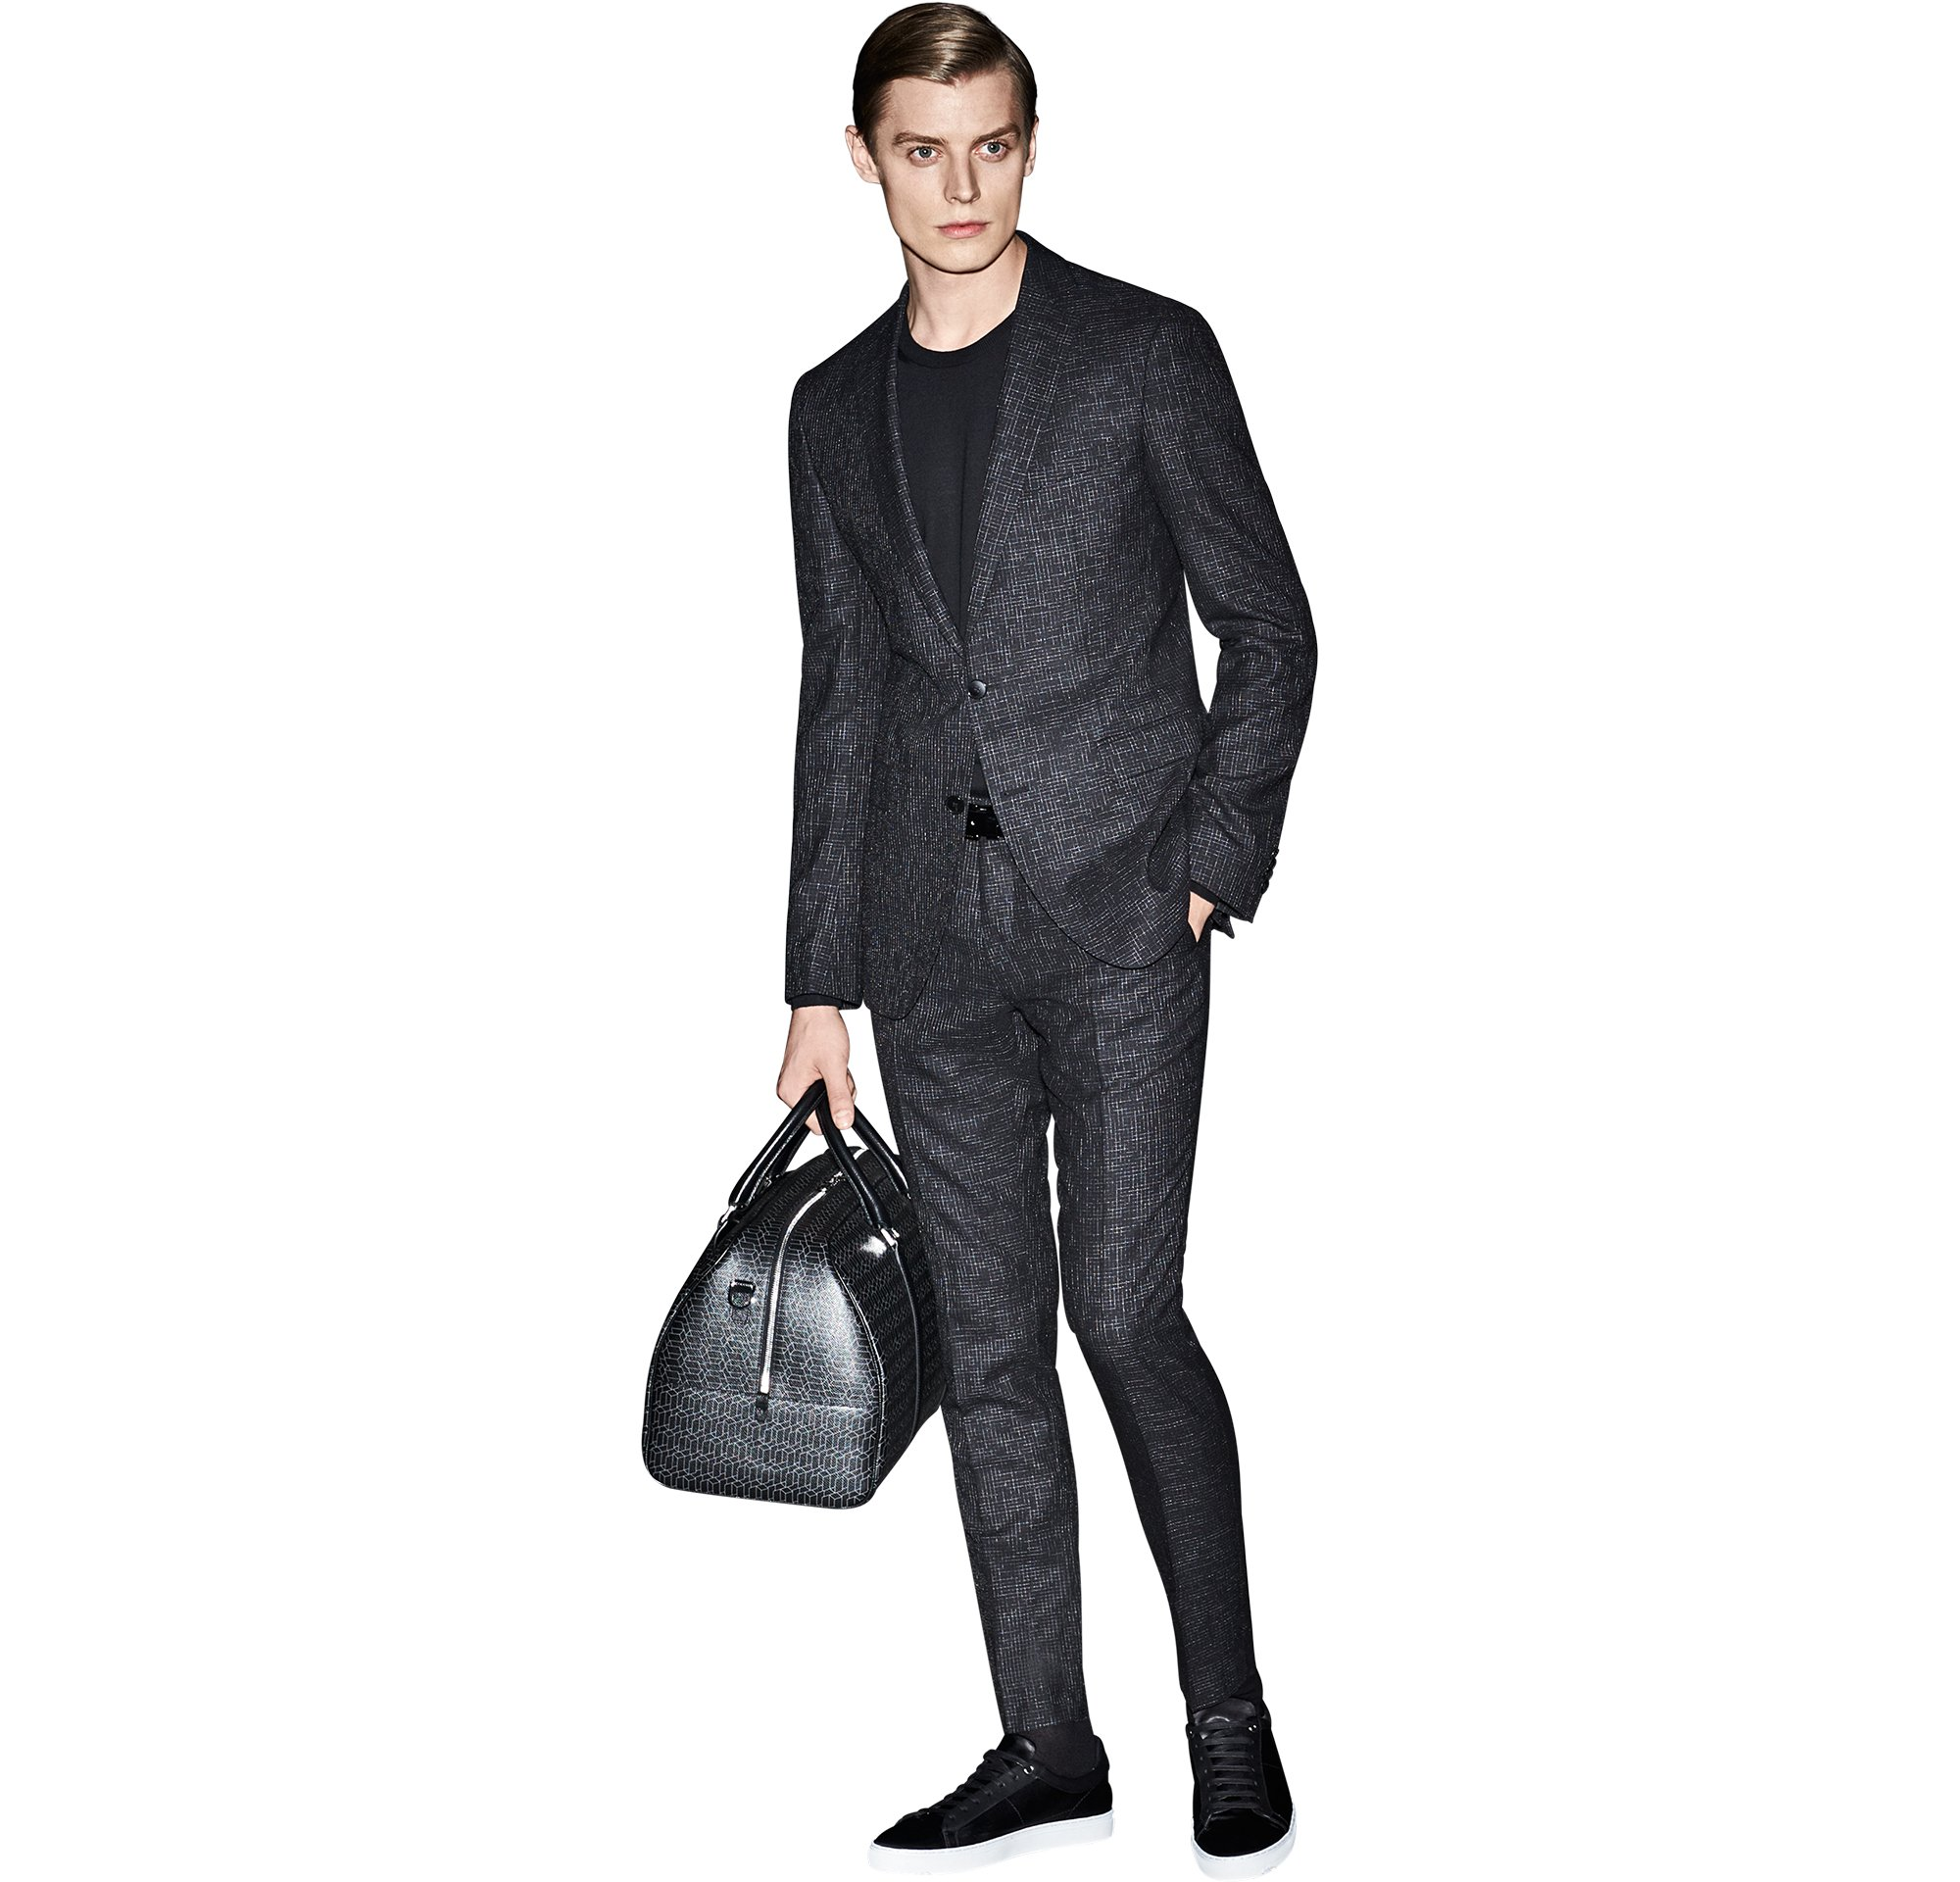 Black suit over black knitwear with a black leather bag and black shoes by BOSS